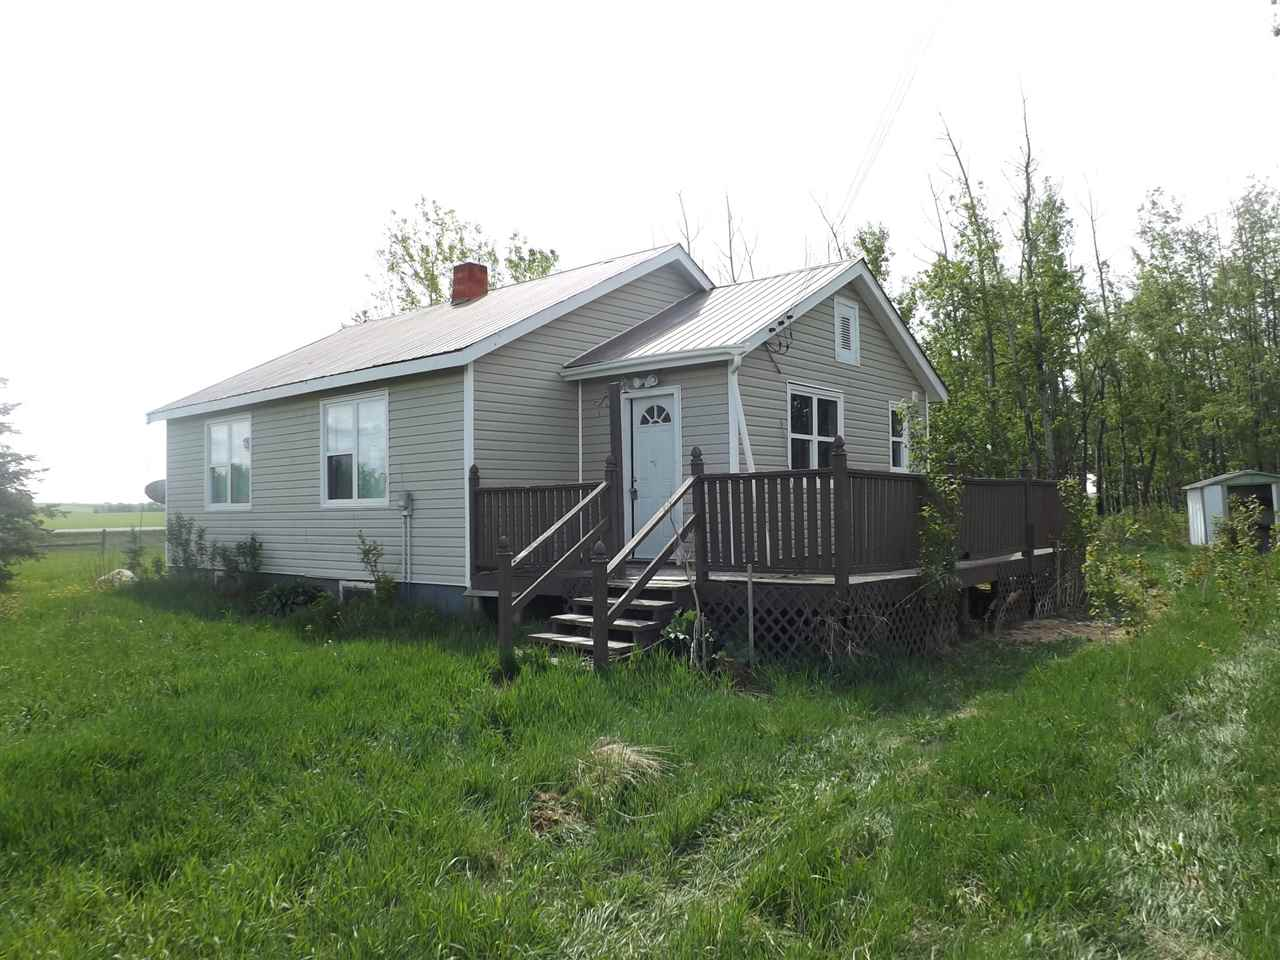 Main Photo: 3344 HIGHWAY 39: Rural Leduc County House for sale : MLS® # E4065862